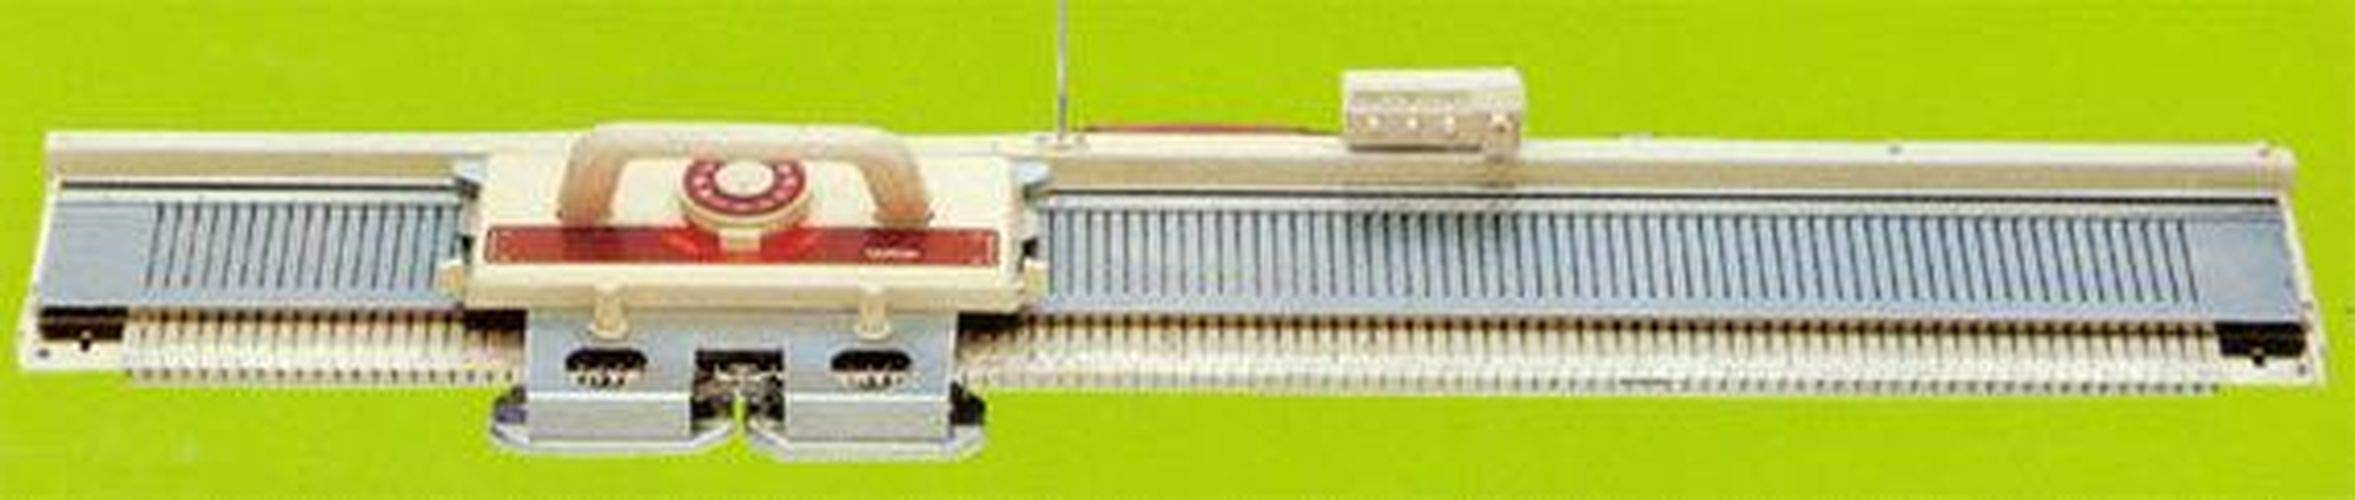 Weaver KH230 Knitting Machine Chunky Knitter Same As Brother KH230 by SUNNY CHOI (Image #1)